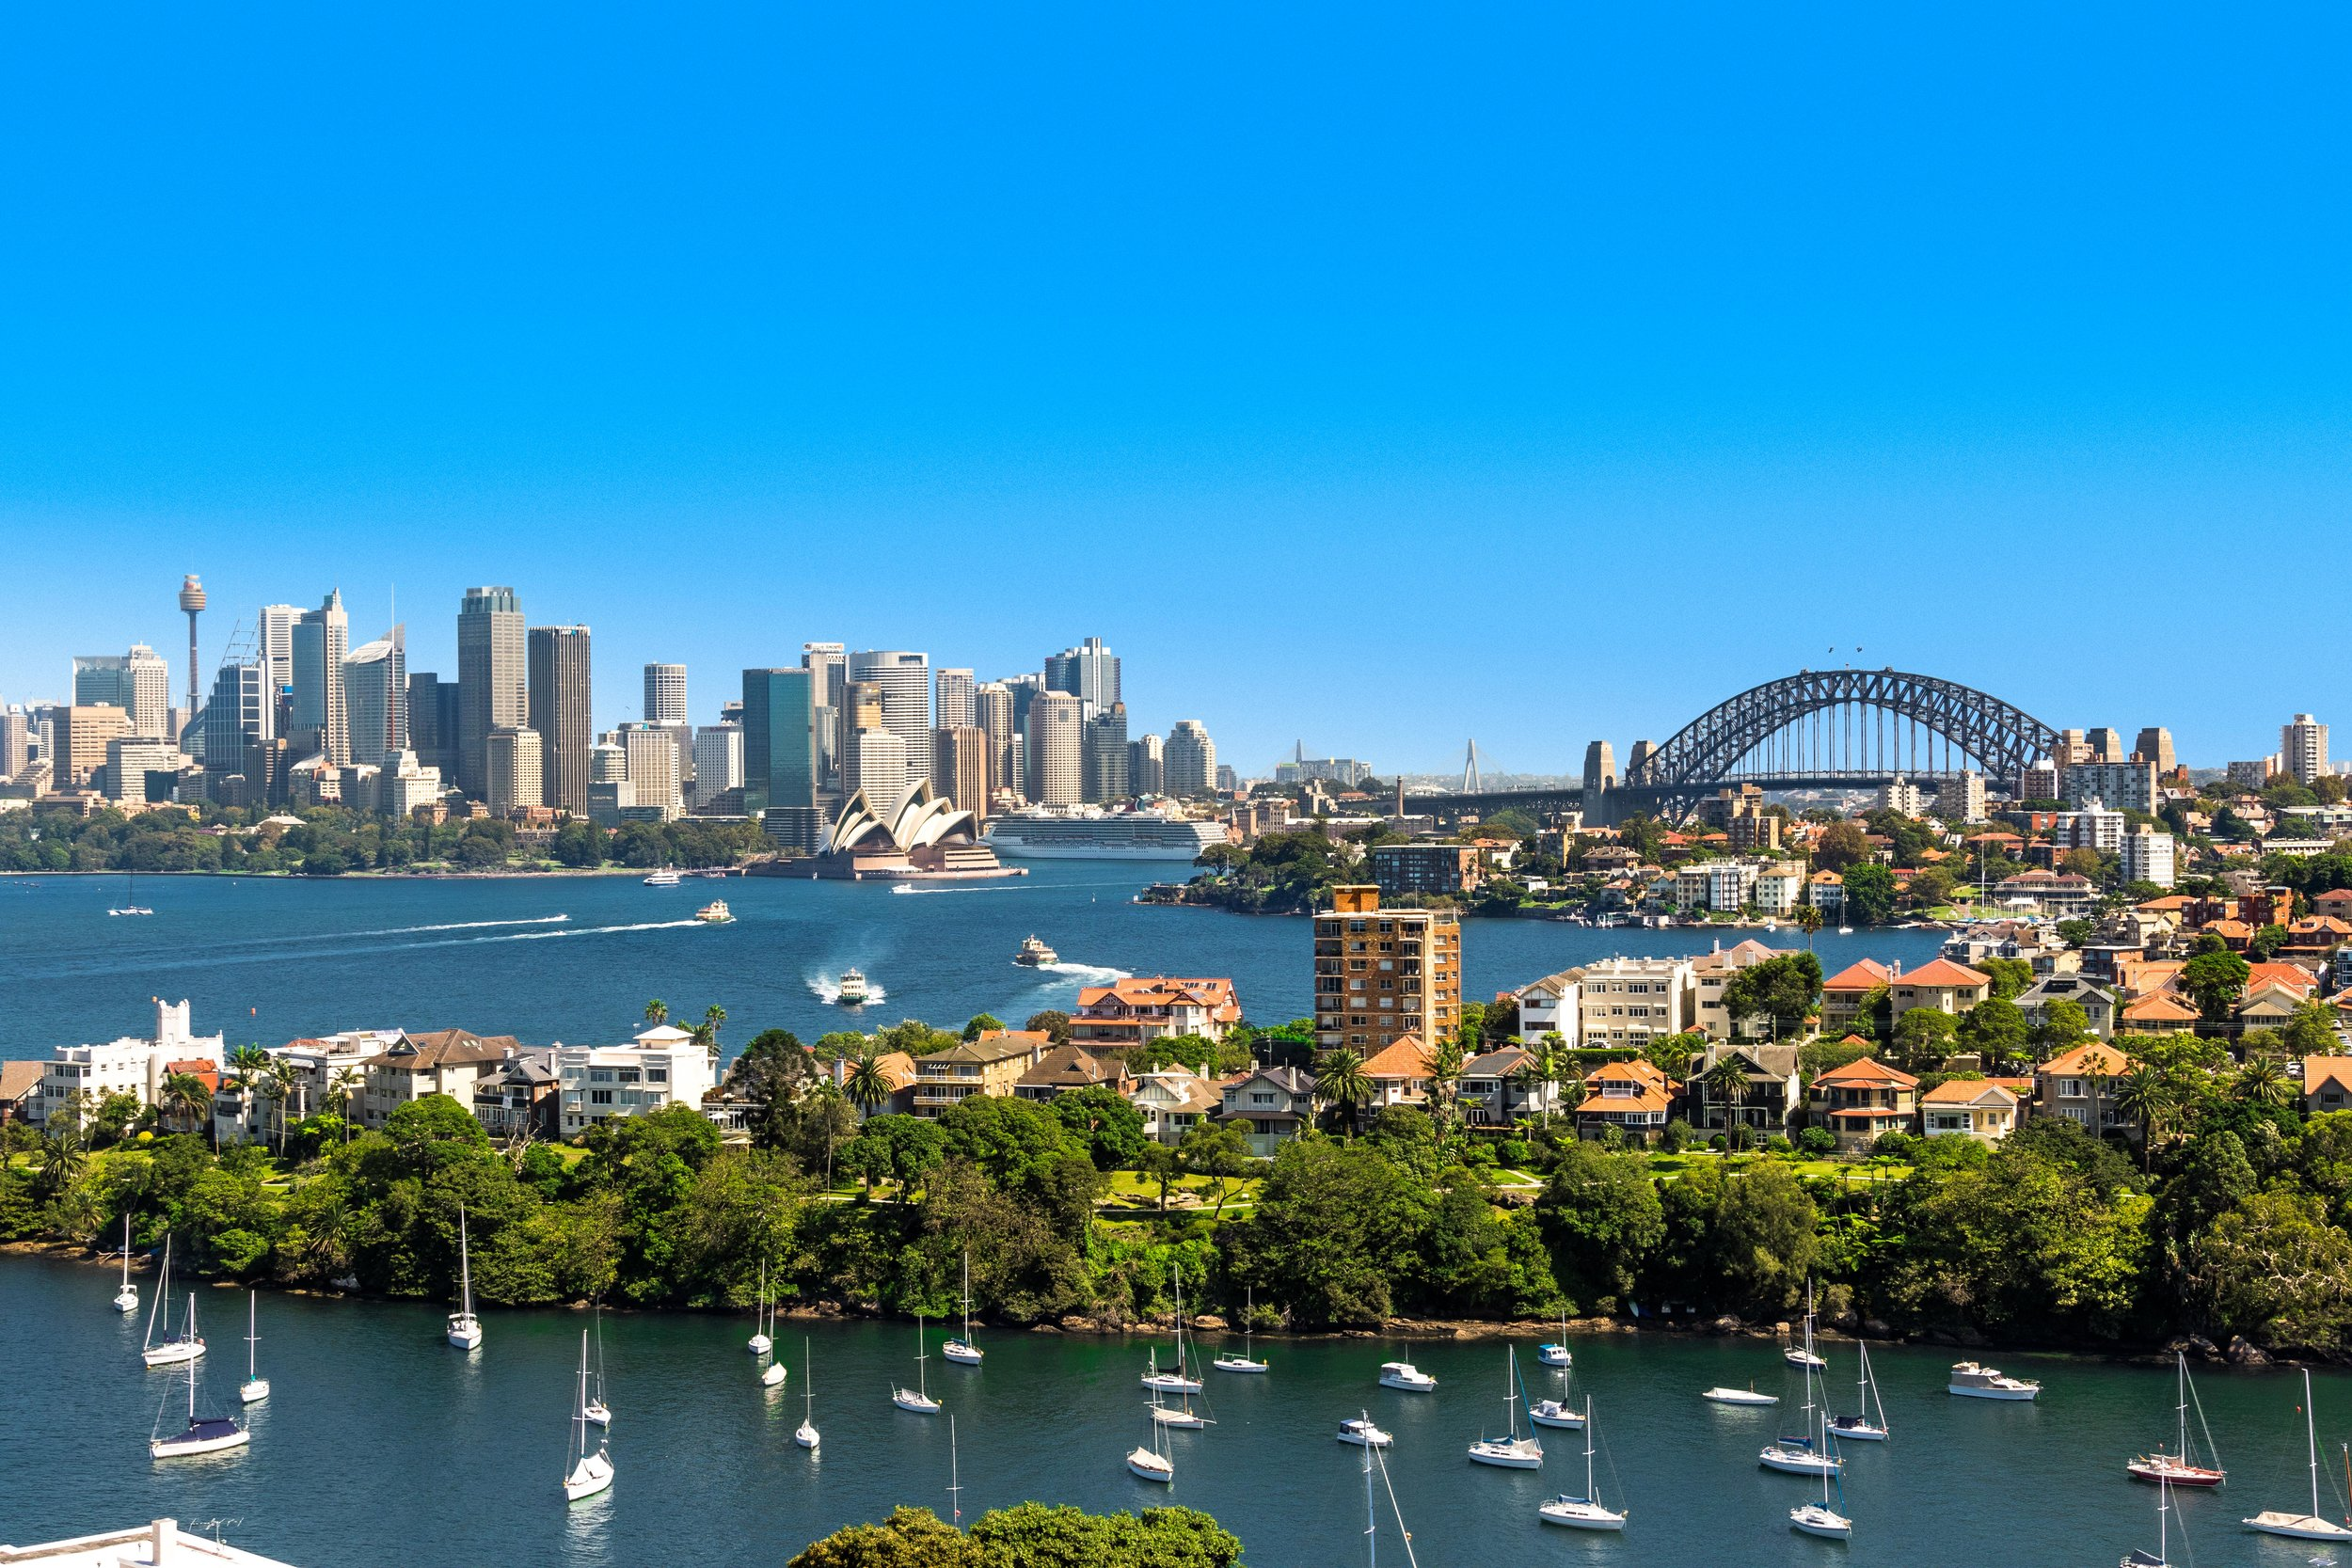 Lower North Shore buyers and sellers can be confident following the Federal Election, says agent Piers van Hamburg.